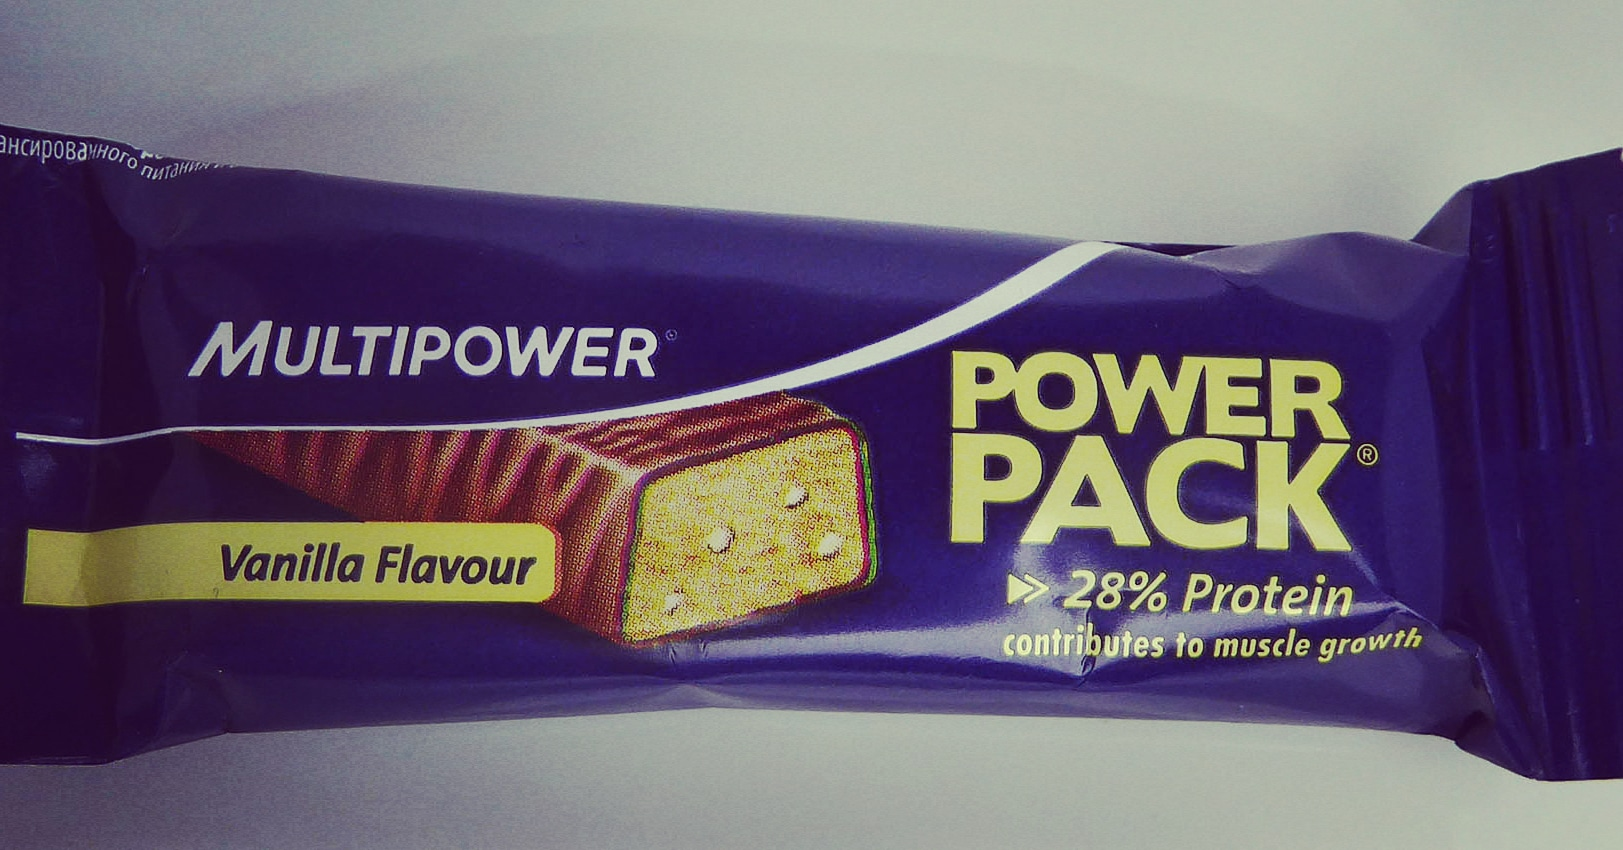 Multipower Proteinbar Power Pack Vanilla Flavour